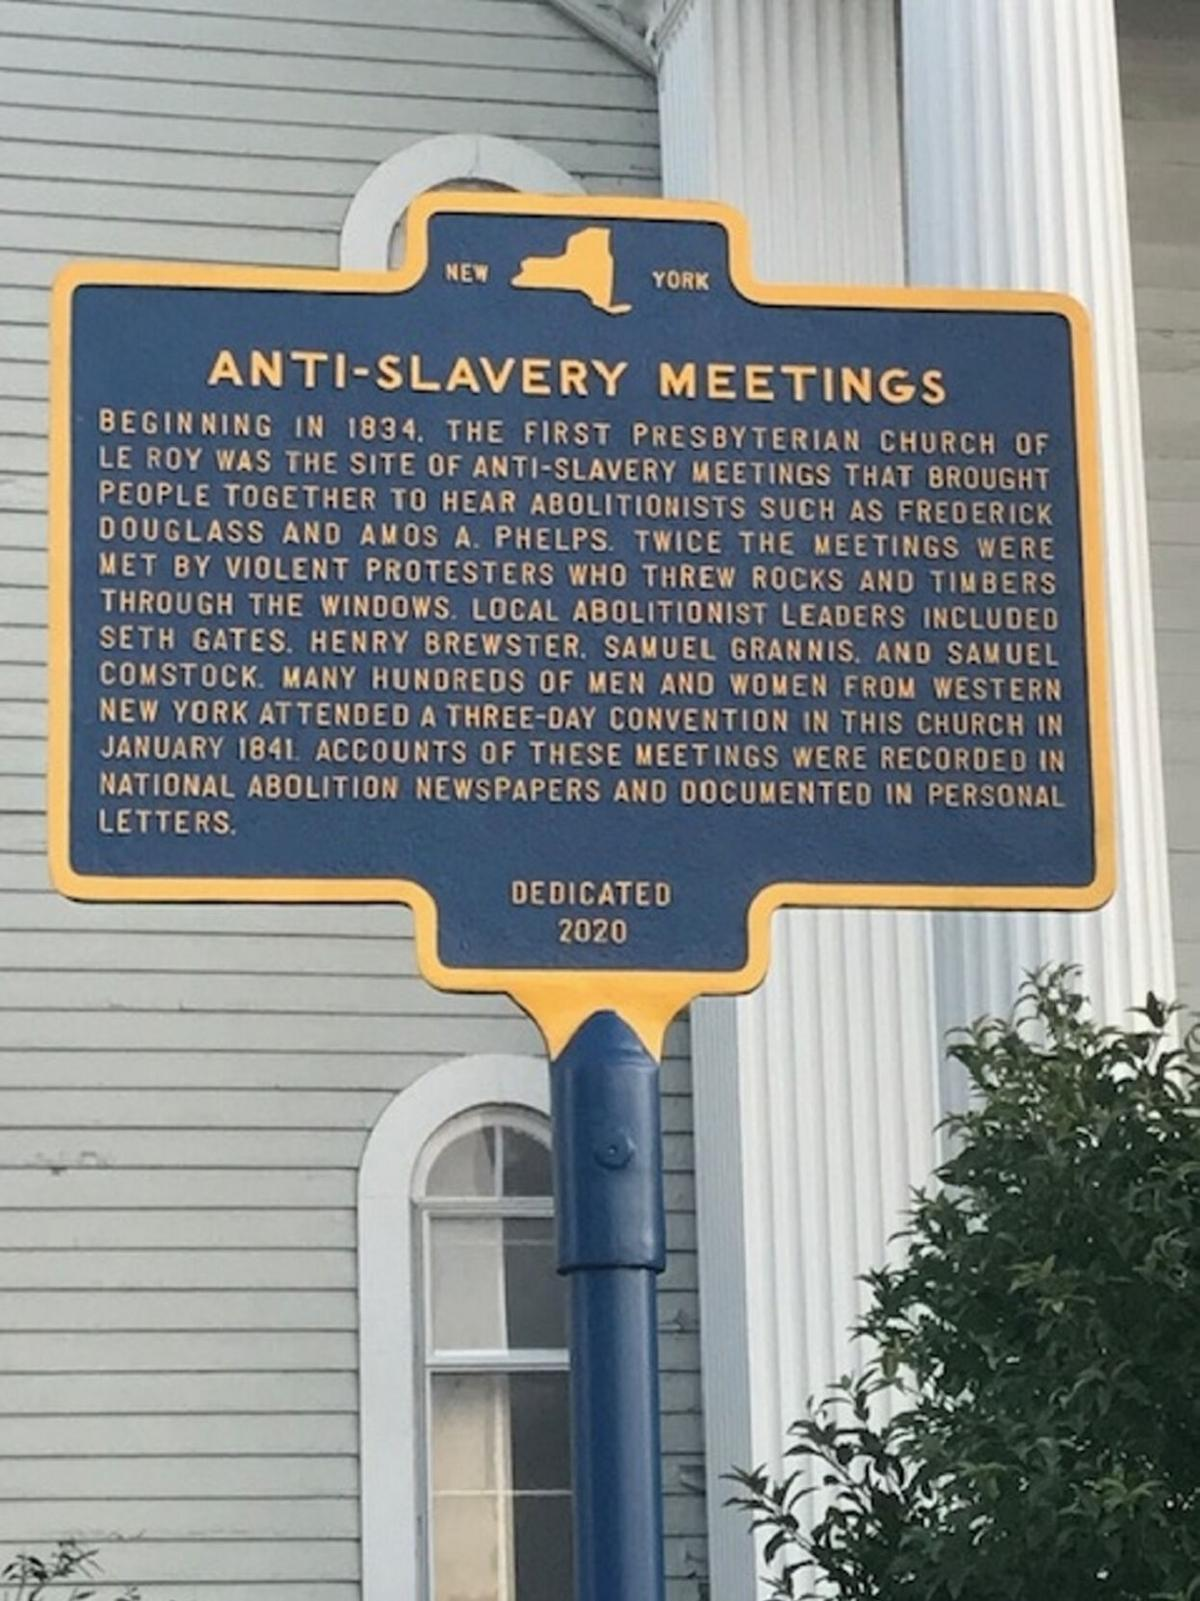 A mirror from the past, casting light into present HISTORIC MARKER: Anti-slavery meetings at Le Roy Presbyterian Church commemorated